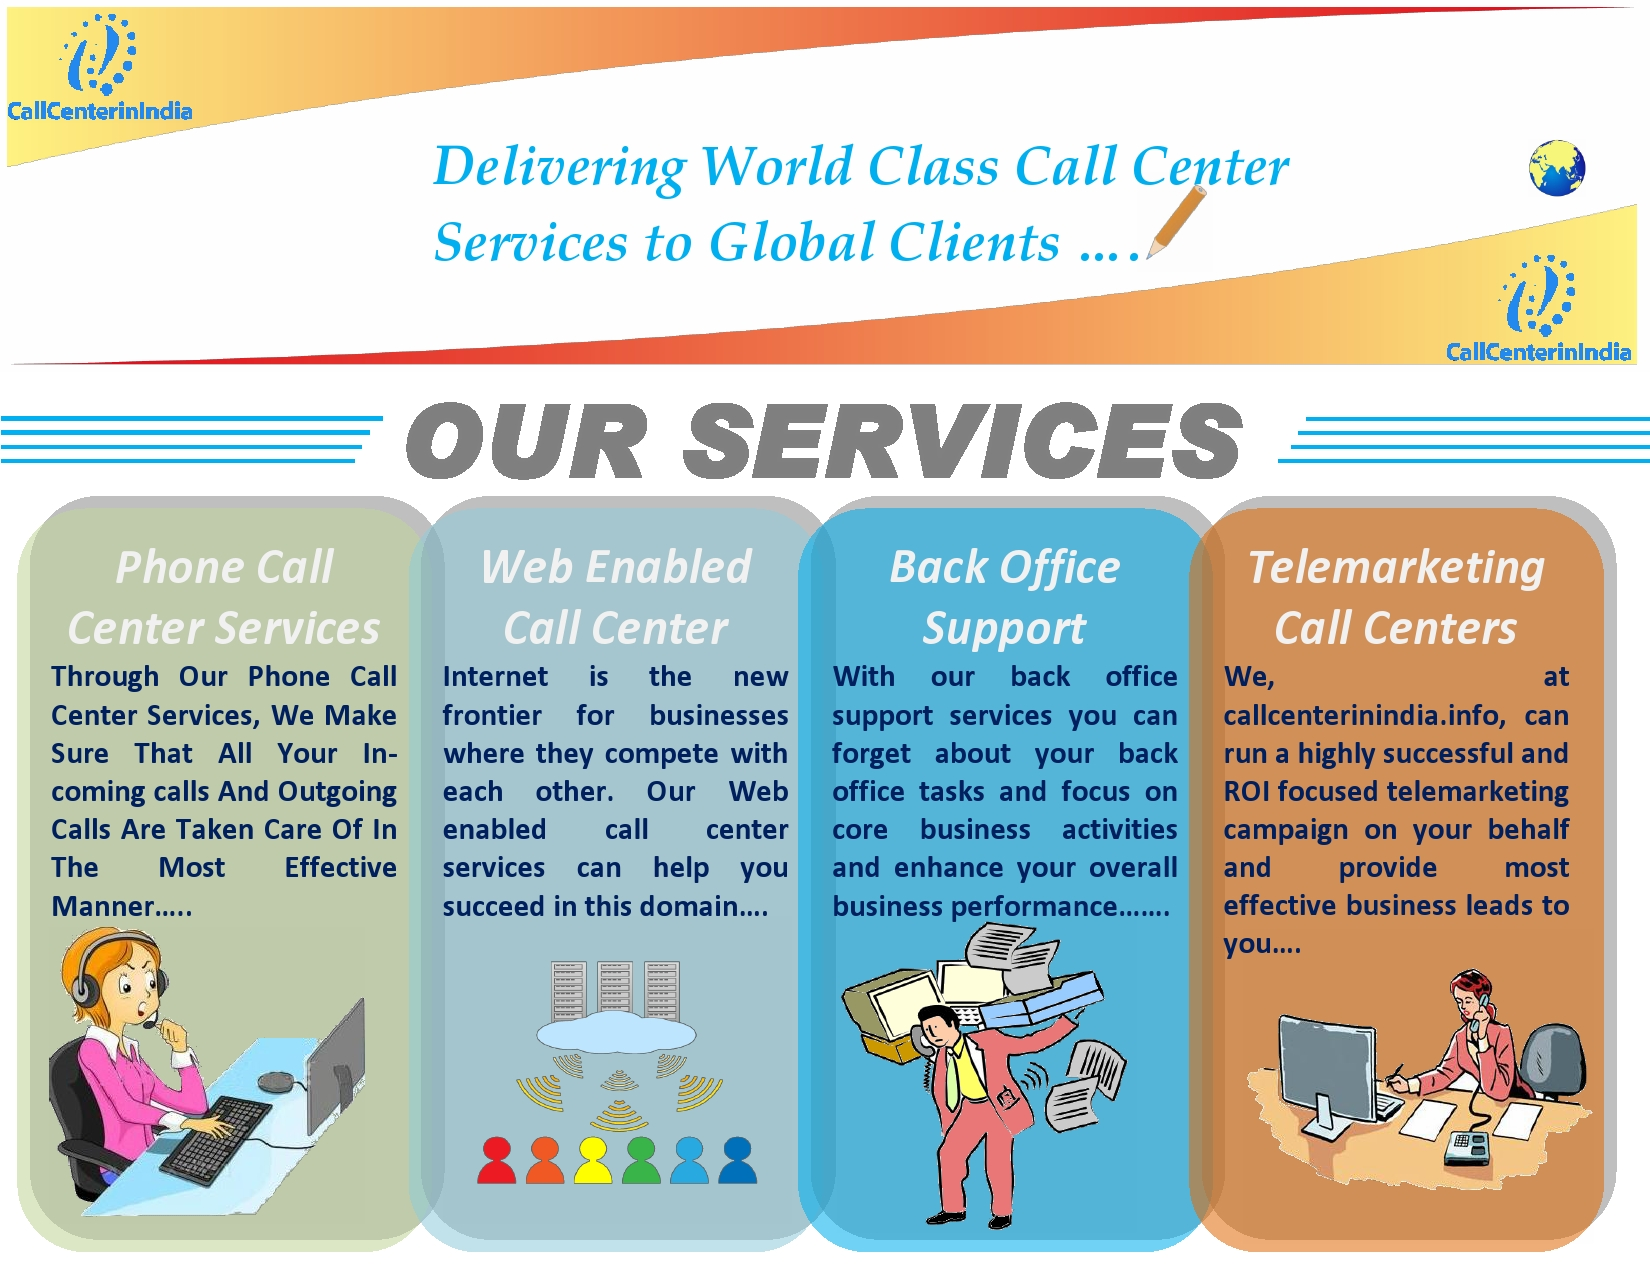 call center services, back office services,phone answering services,telemarketing services